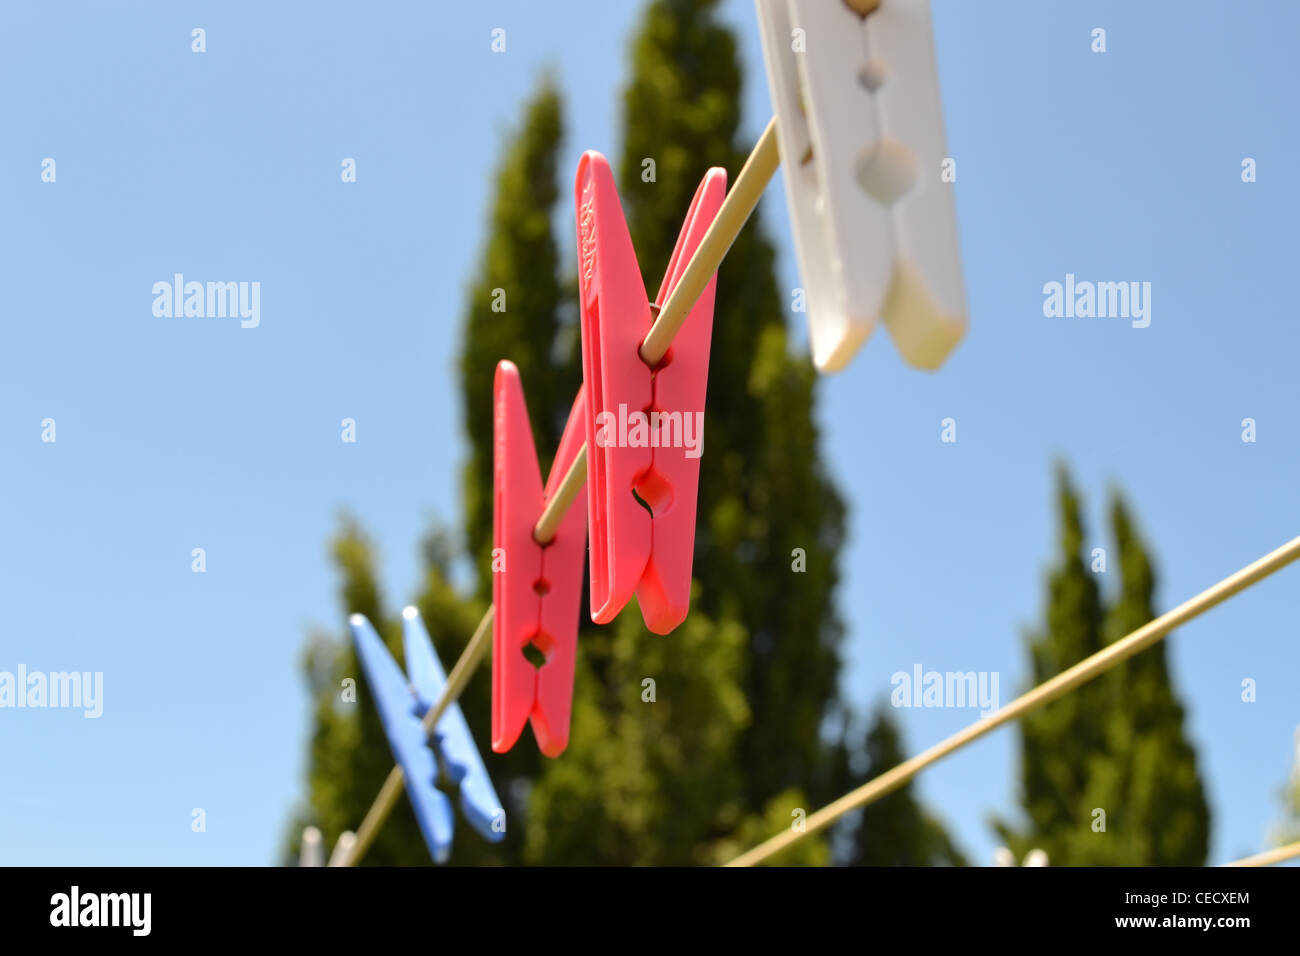 Pegs on a clothesline - Stock Image